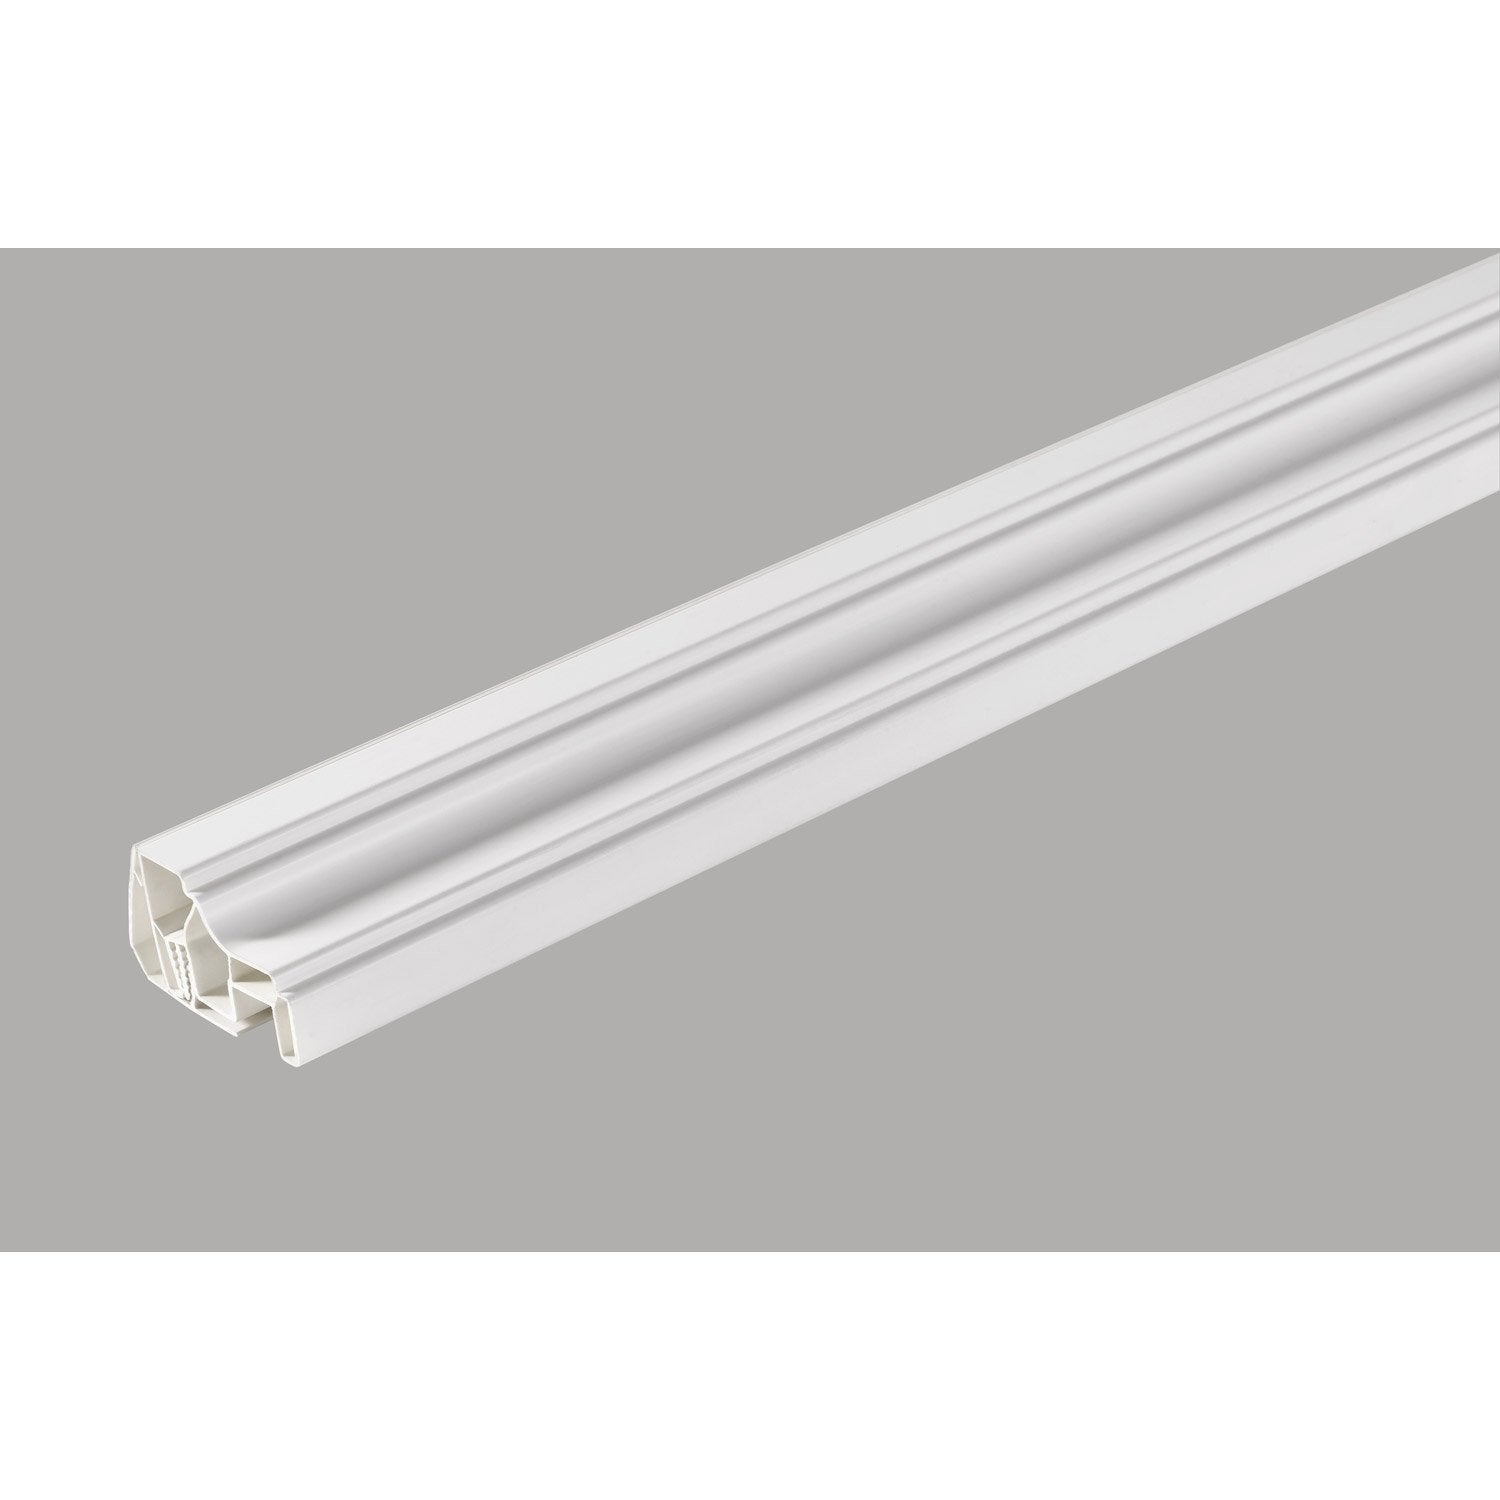 Profil de finition clipsable pvc blanc 260x4x5cm leroy for Laminas pvc leroy merlin